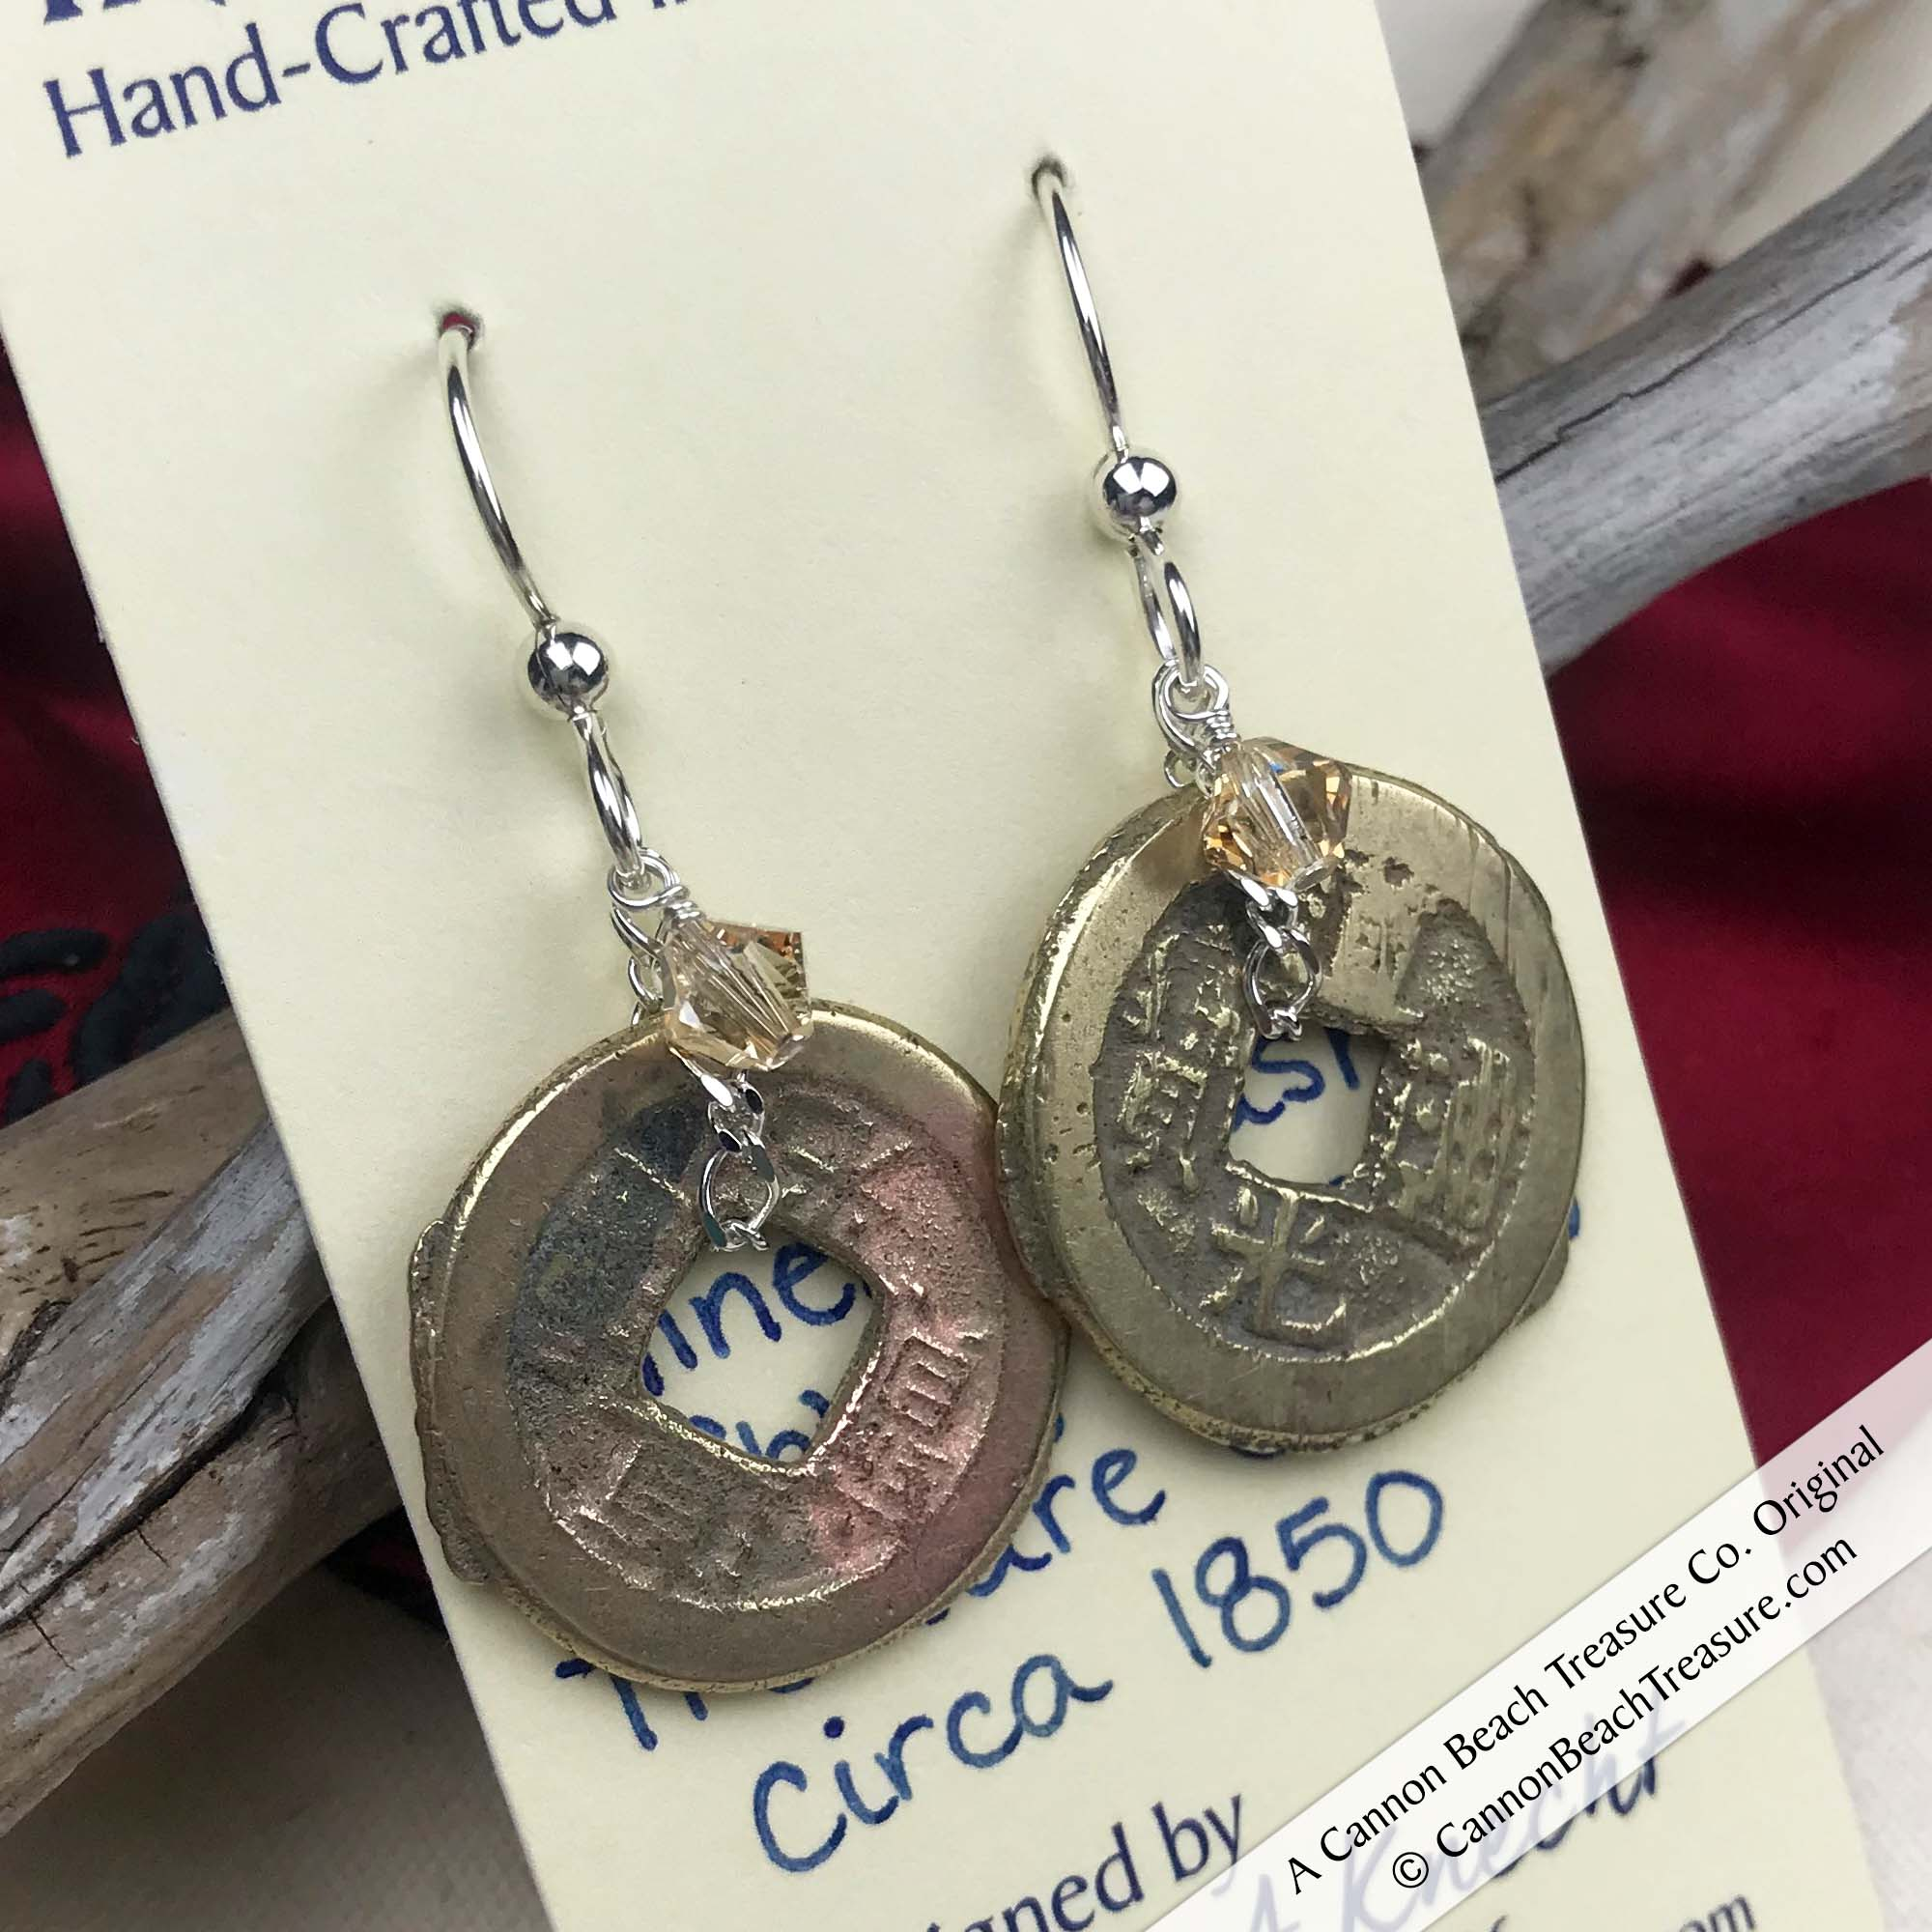 Ch'ing Dynasty 1 Cash Treasure Coin Earrings with Silk Swarovski Crystals | Artifact #8713